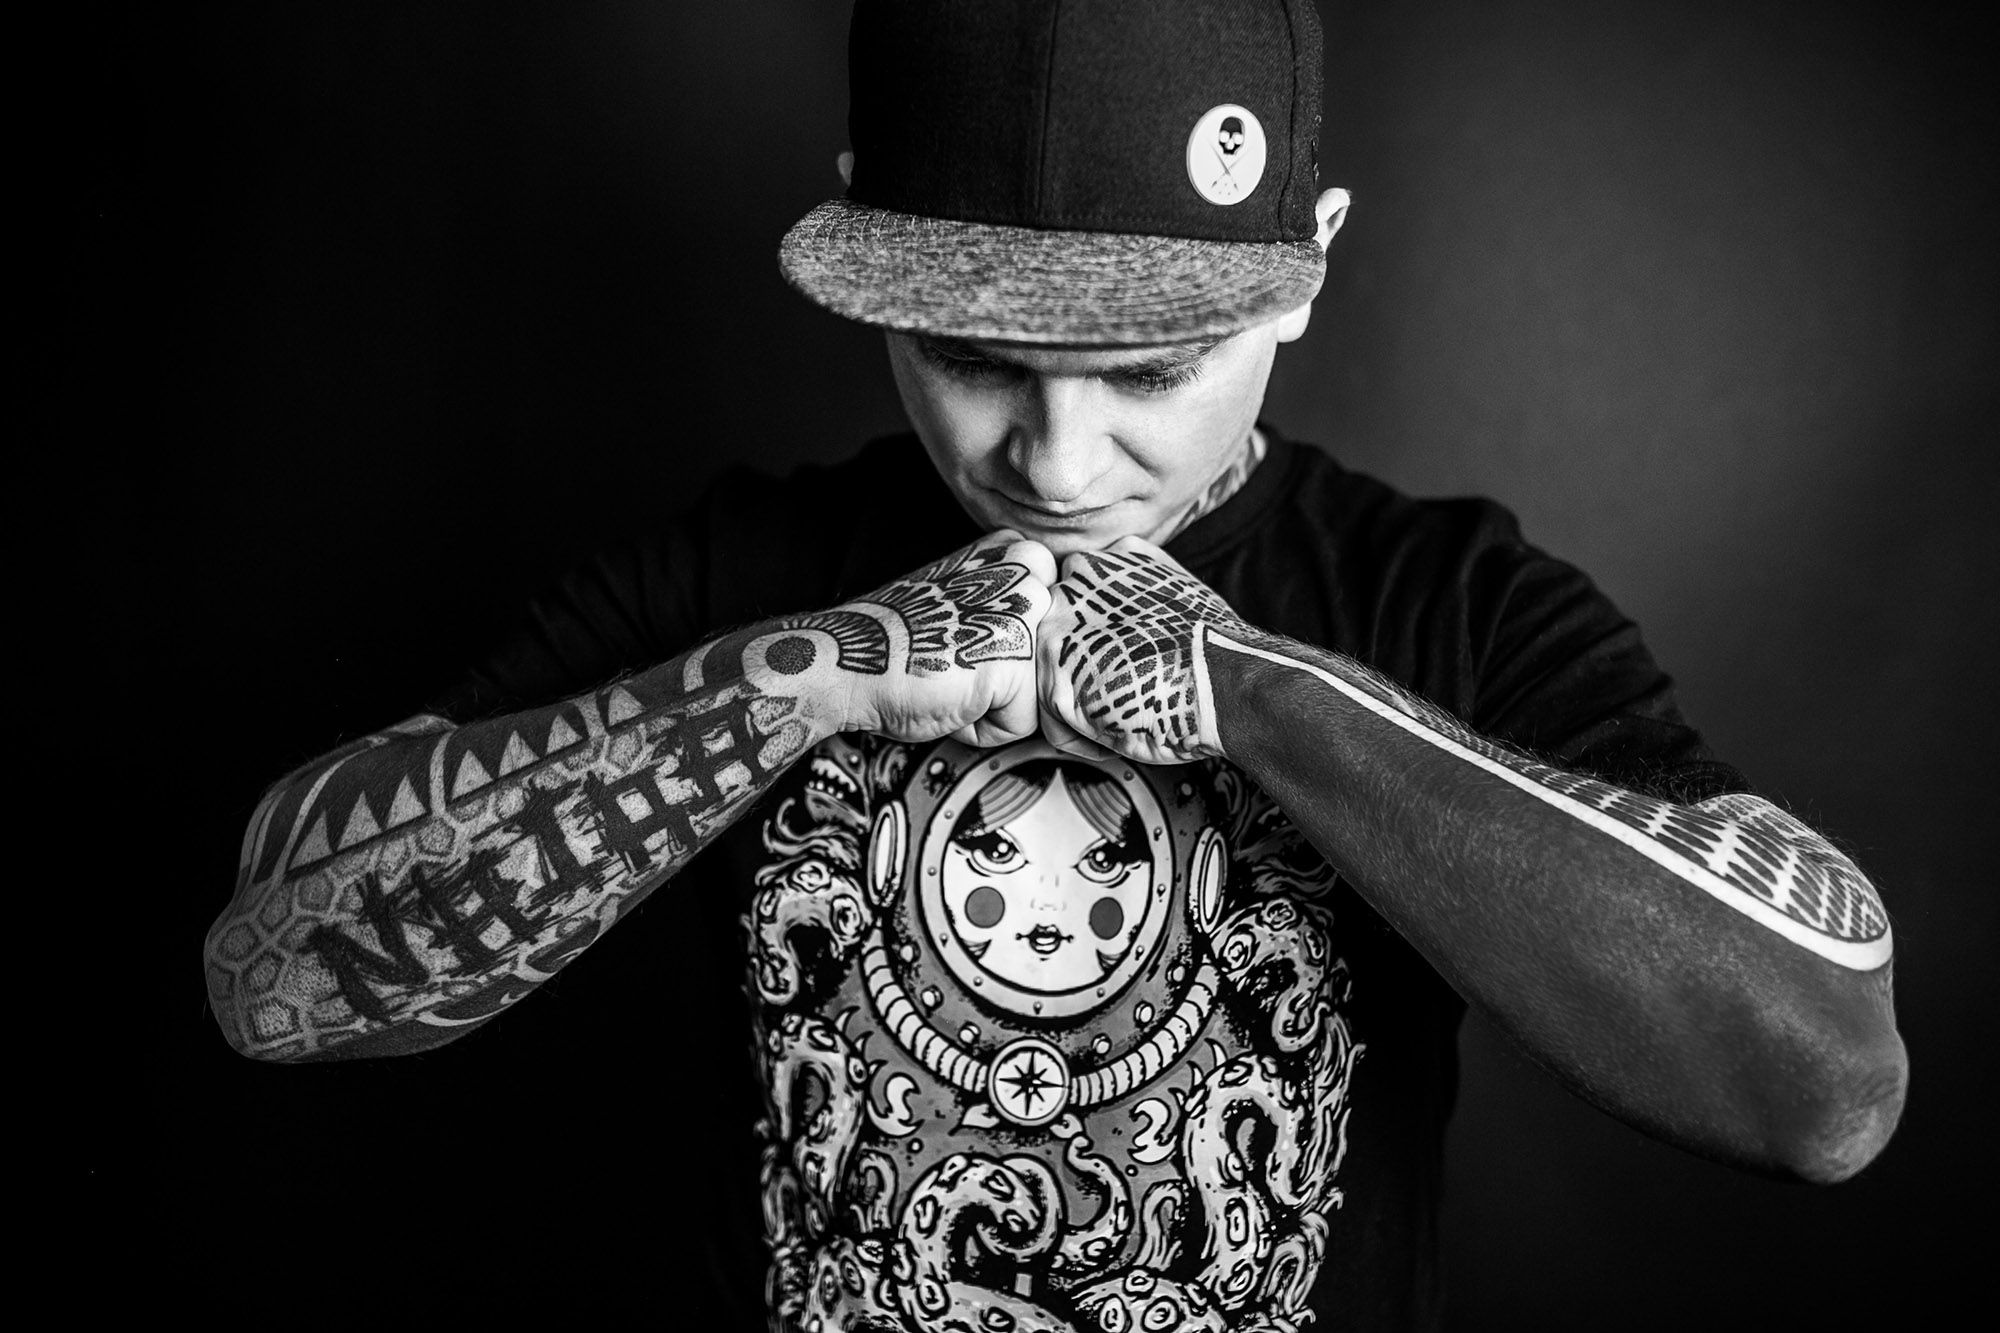 tattooist ilya cascad, pictured